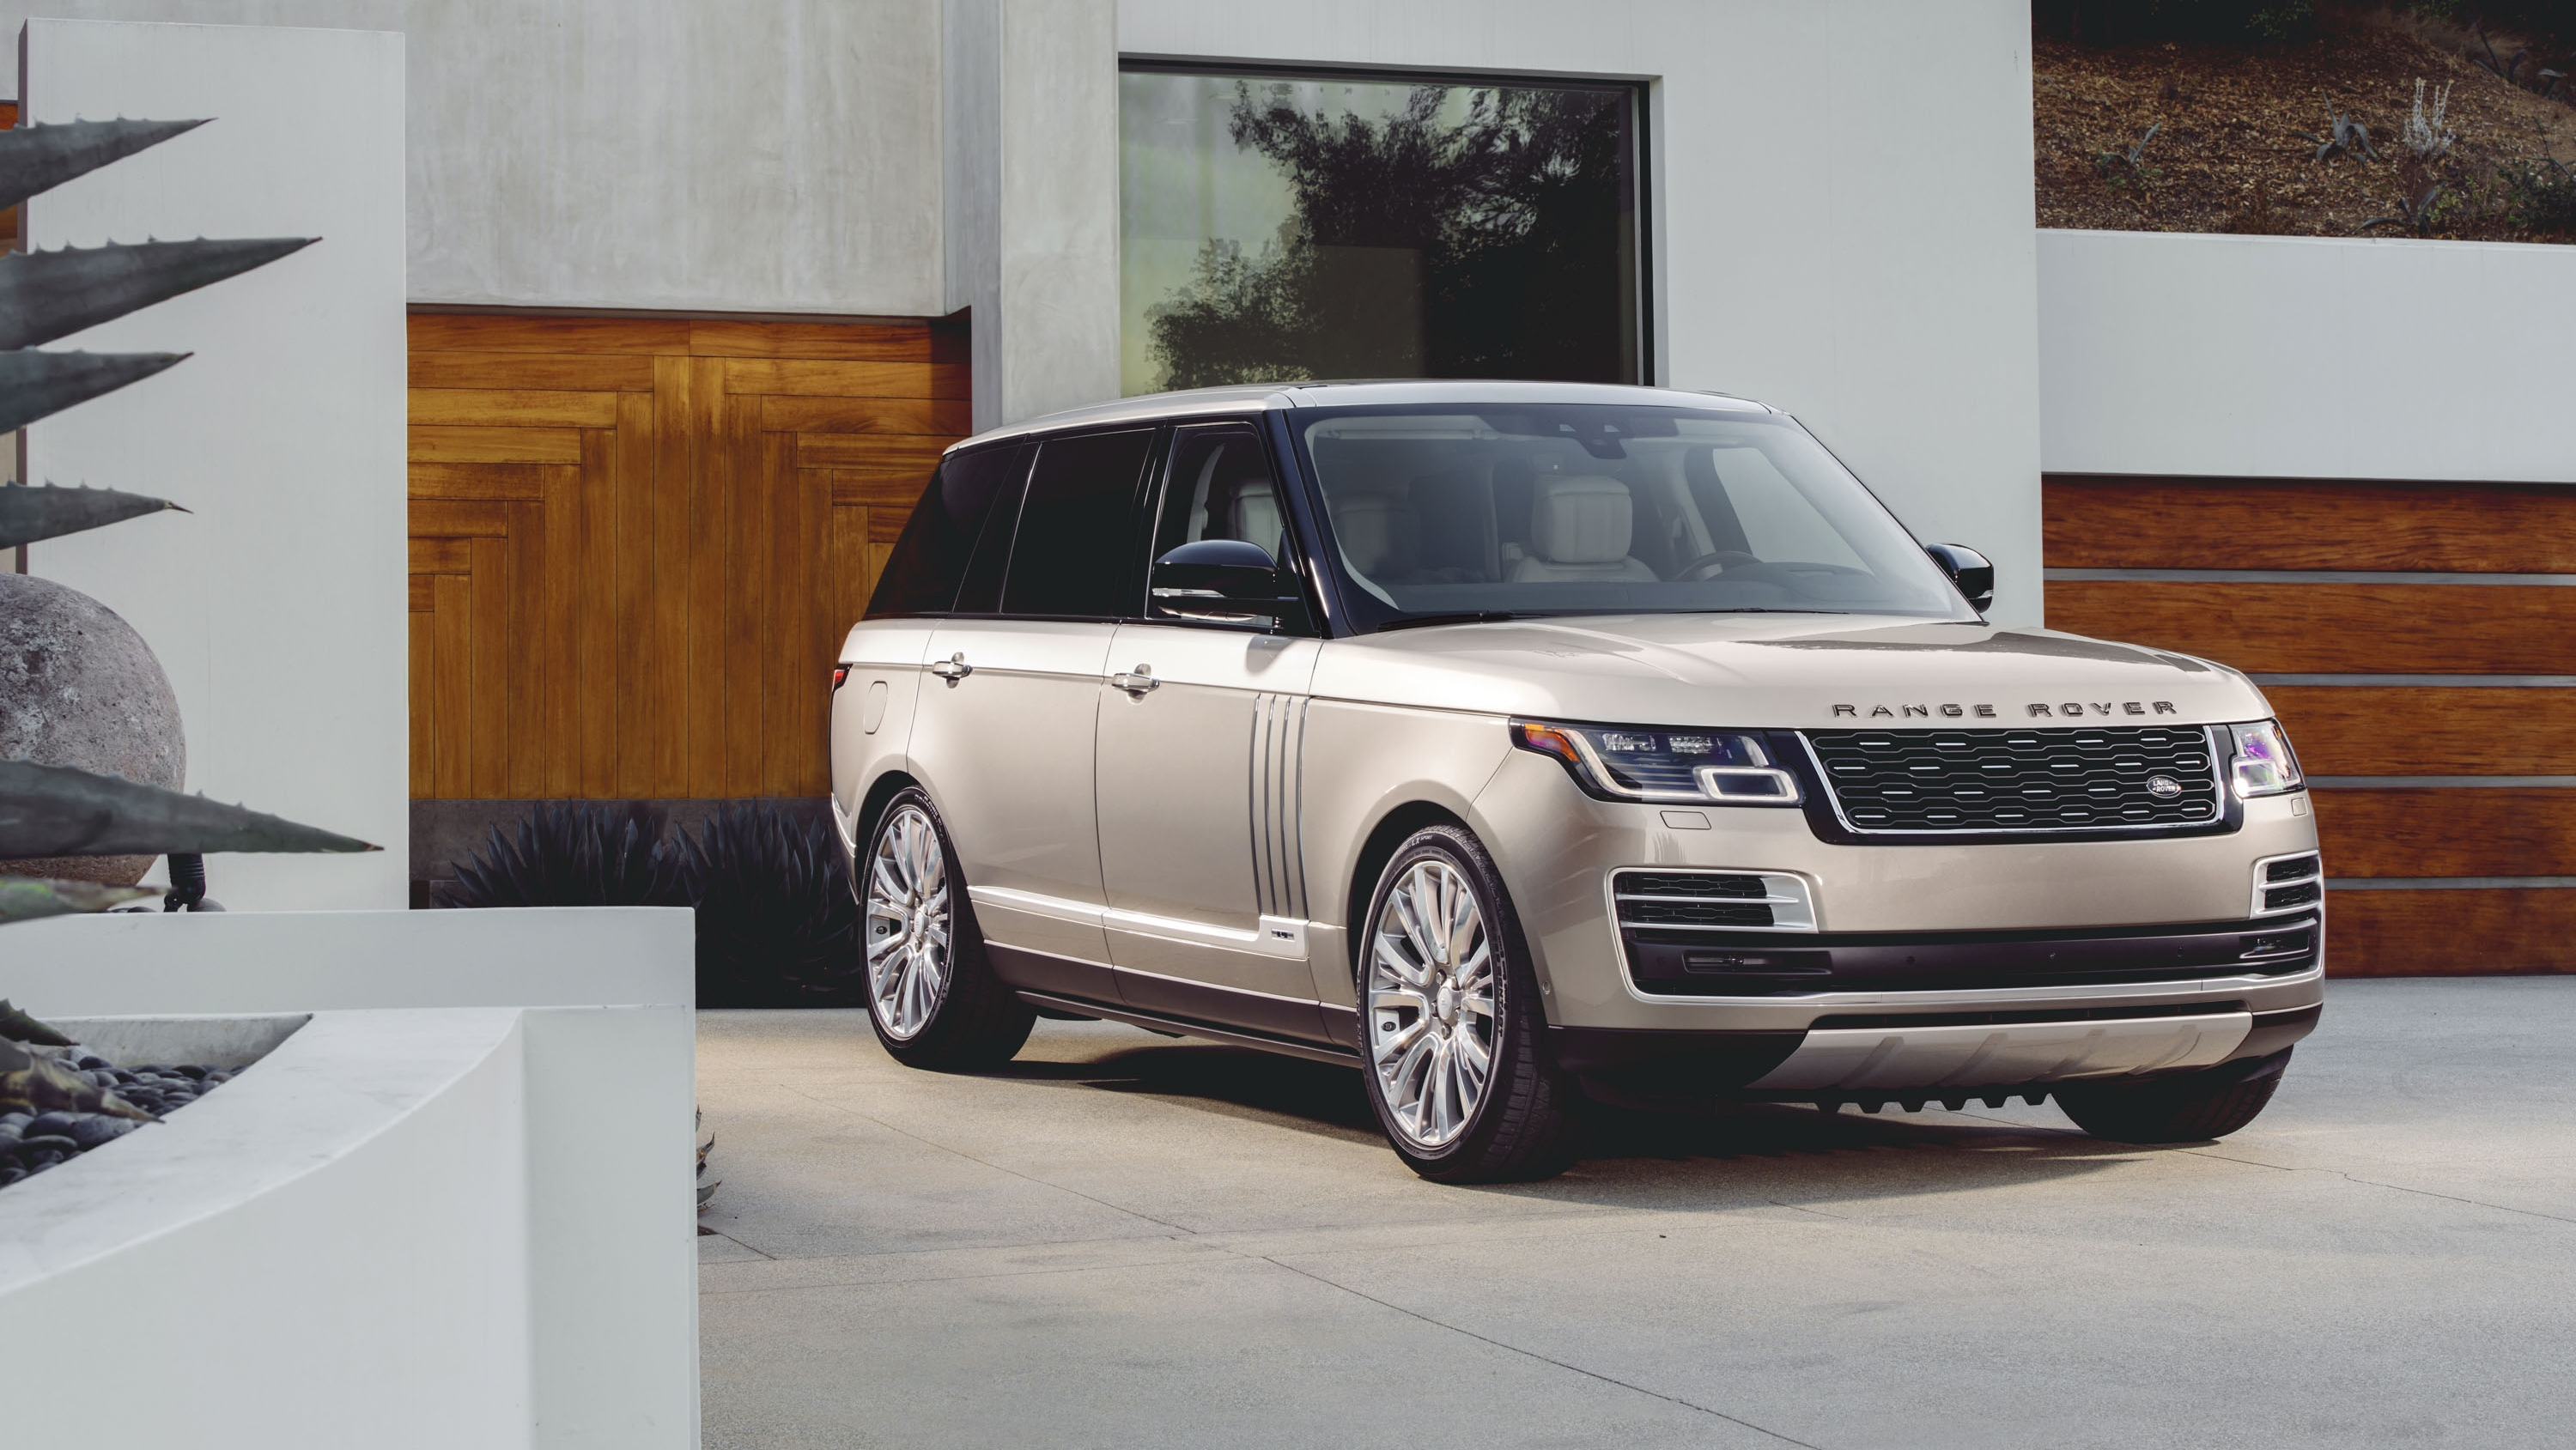 2018 Land Rover Range Rover SVAutobiography Pictures, Photos, Wallpapers.